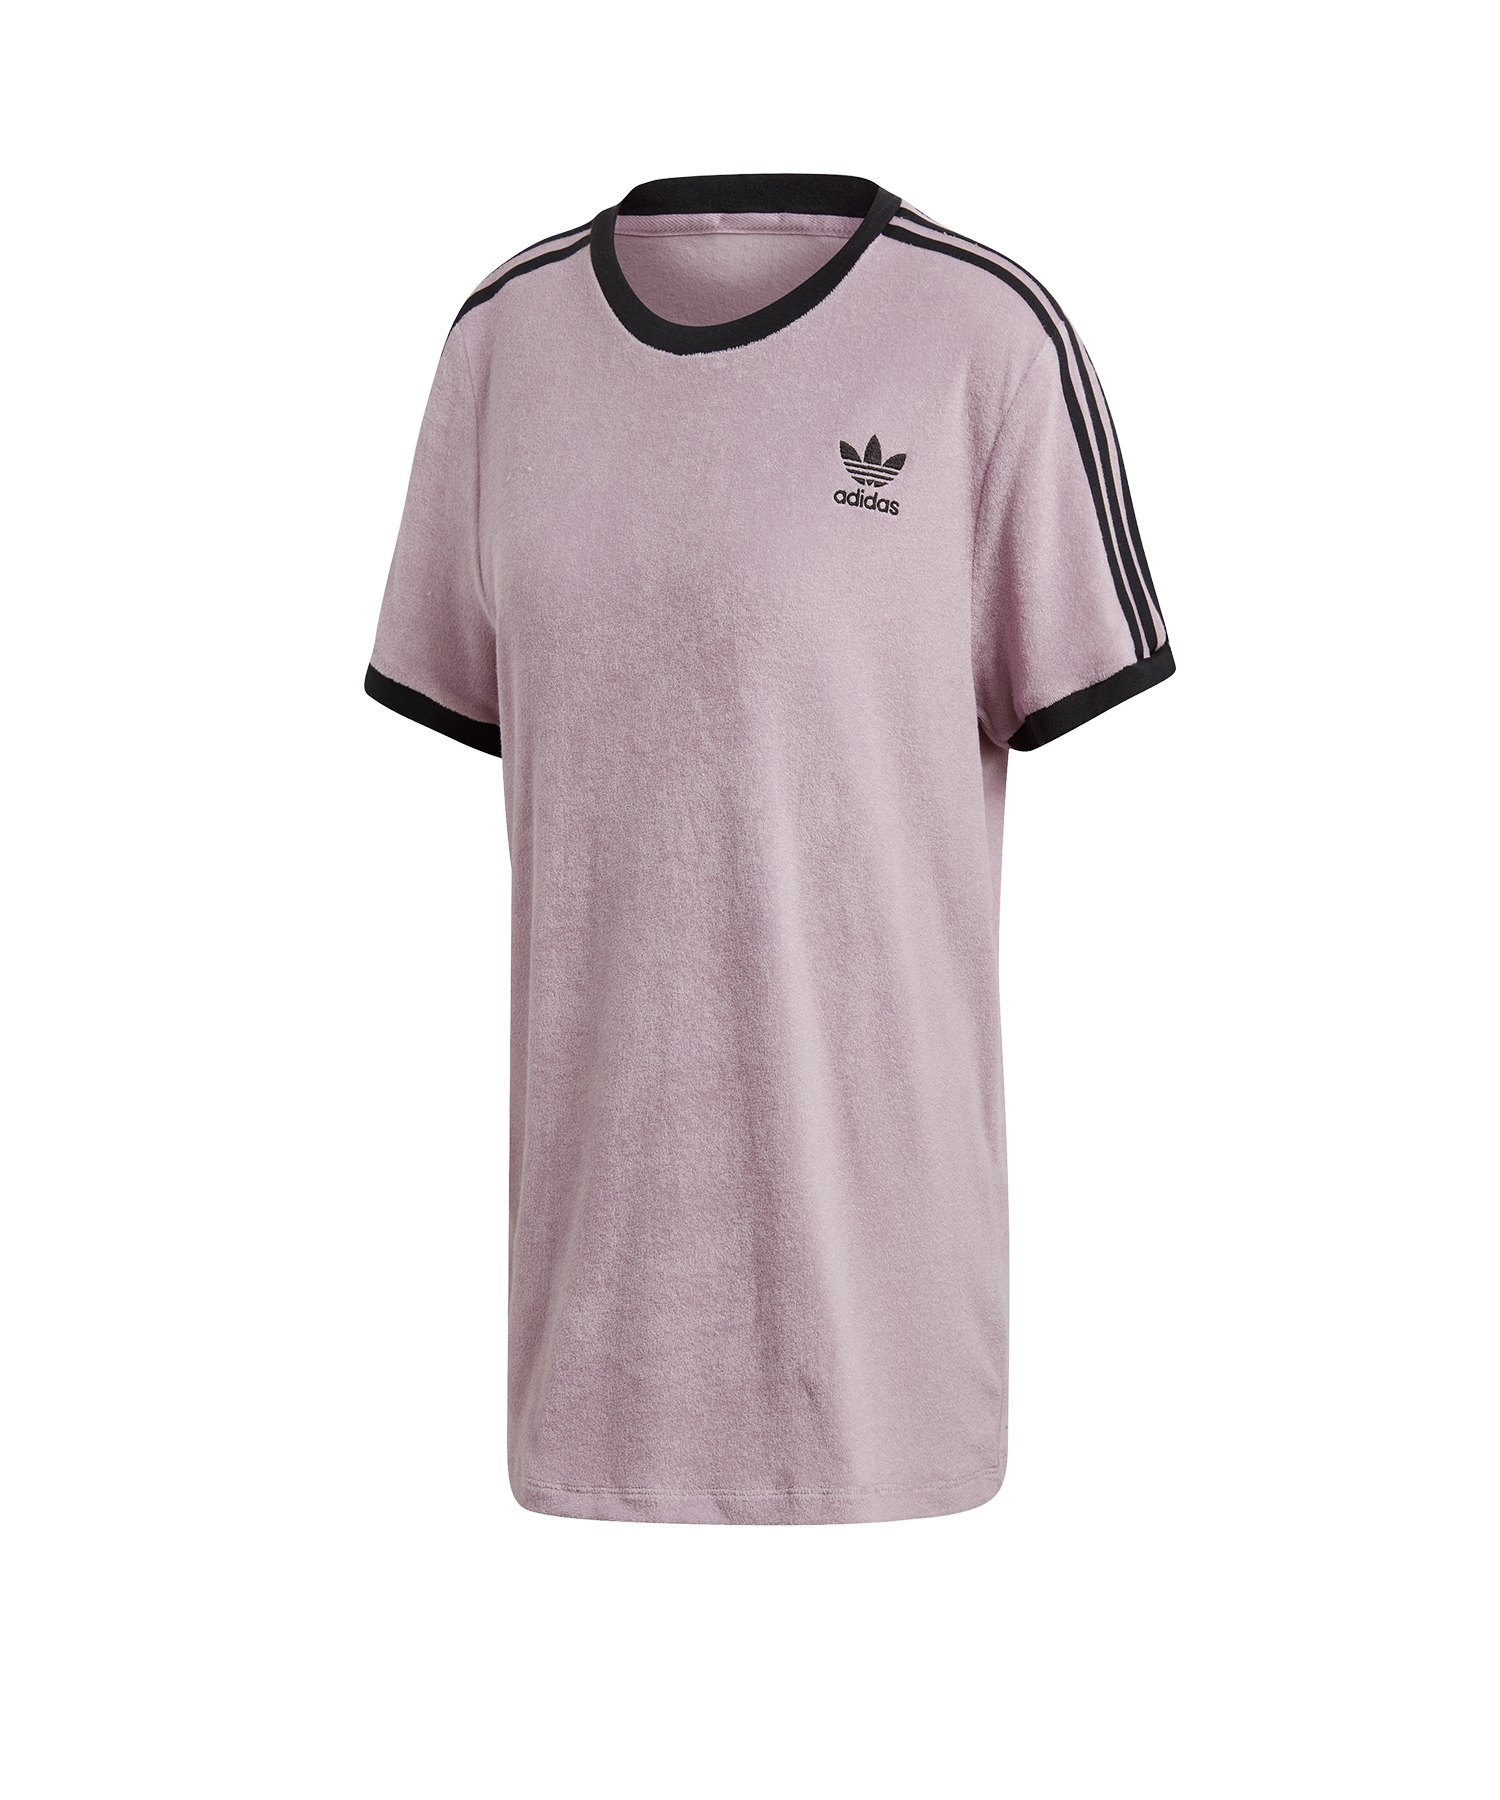 adidas Originals 3 Stripes Tee T Shirt Damen Lila